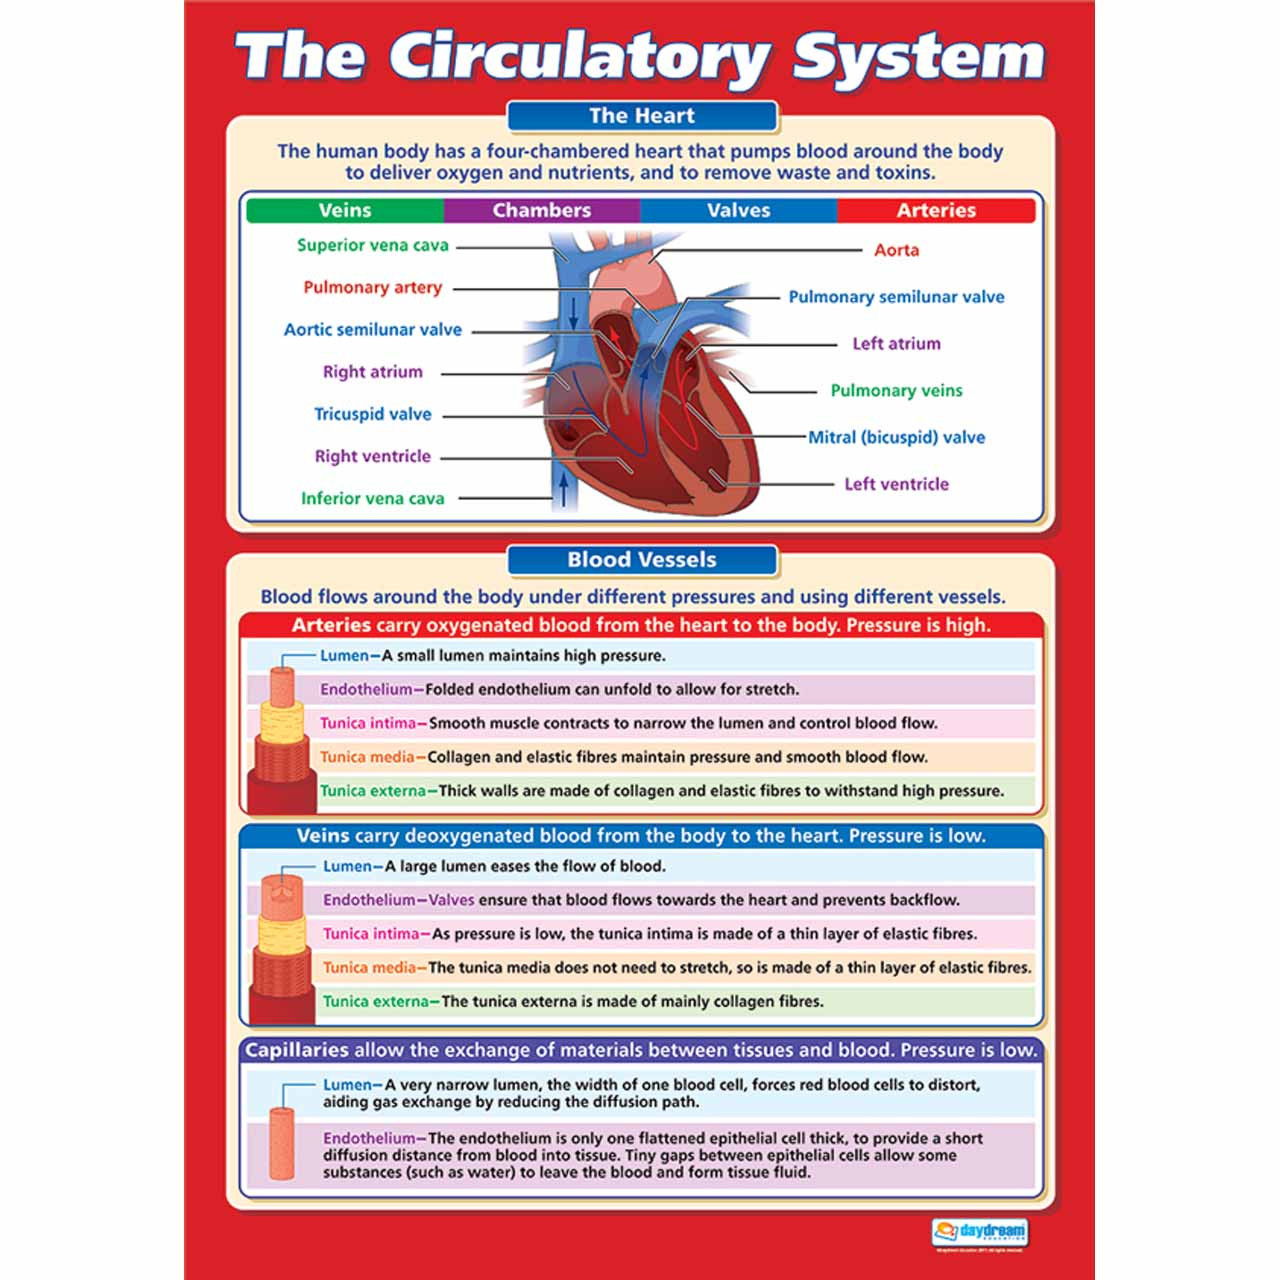 The Circulatory System Laminated